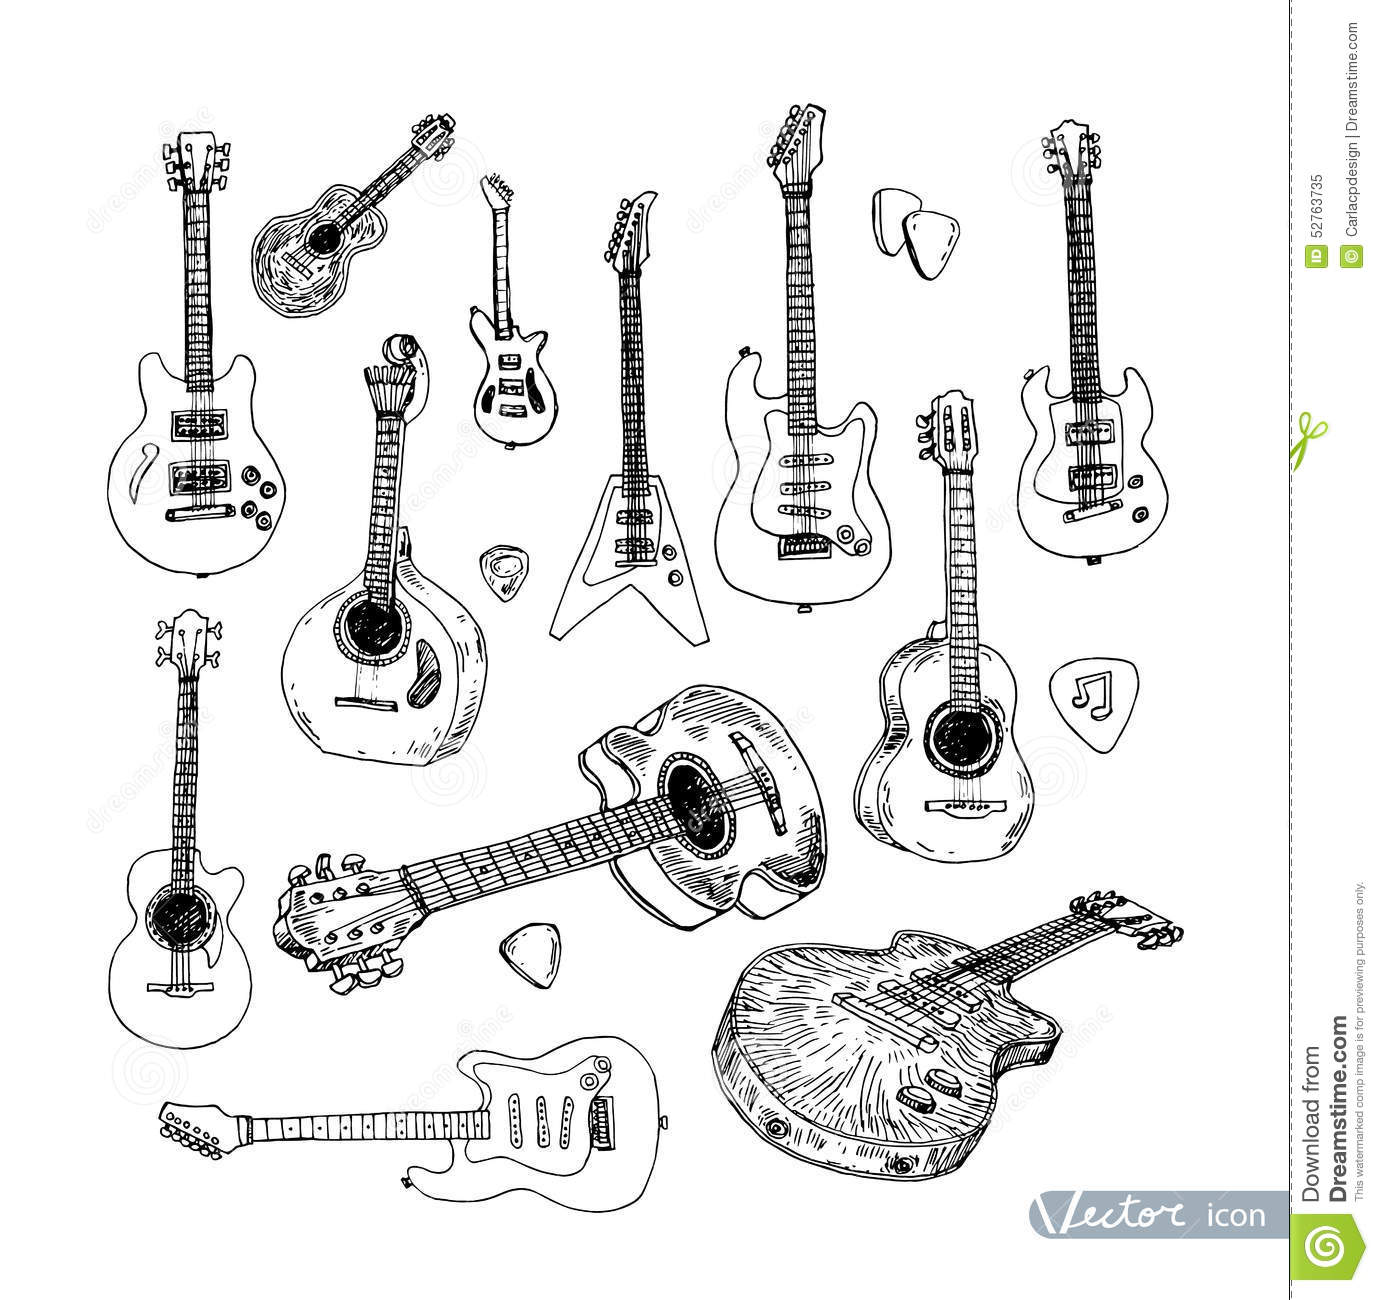 Electric Guitar Hand Drawn Doodle Vector Illustration